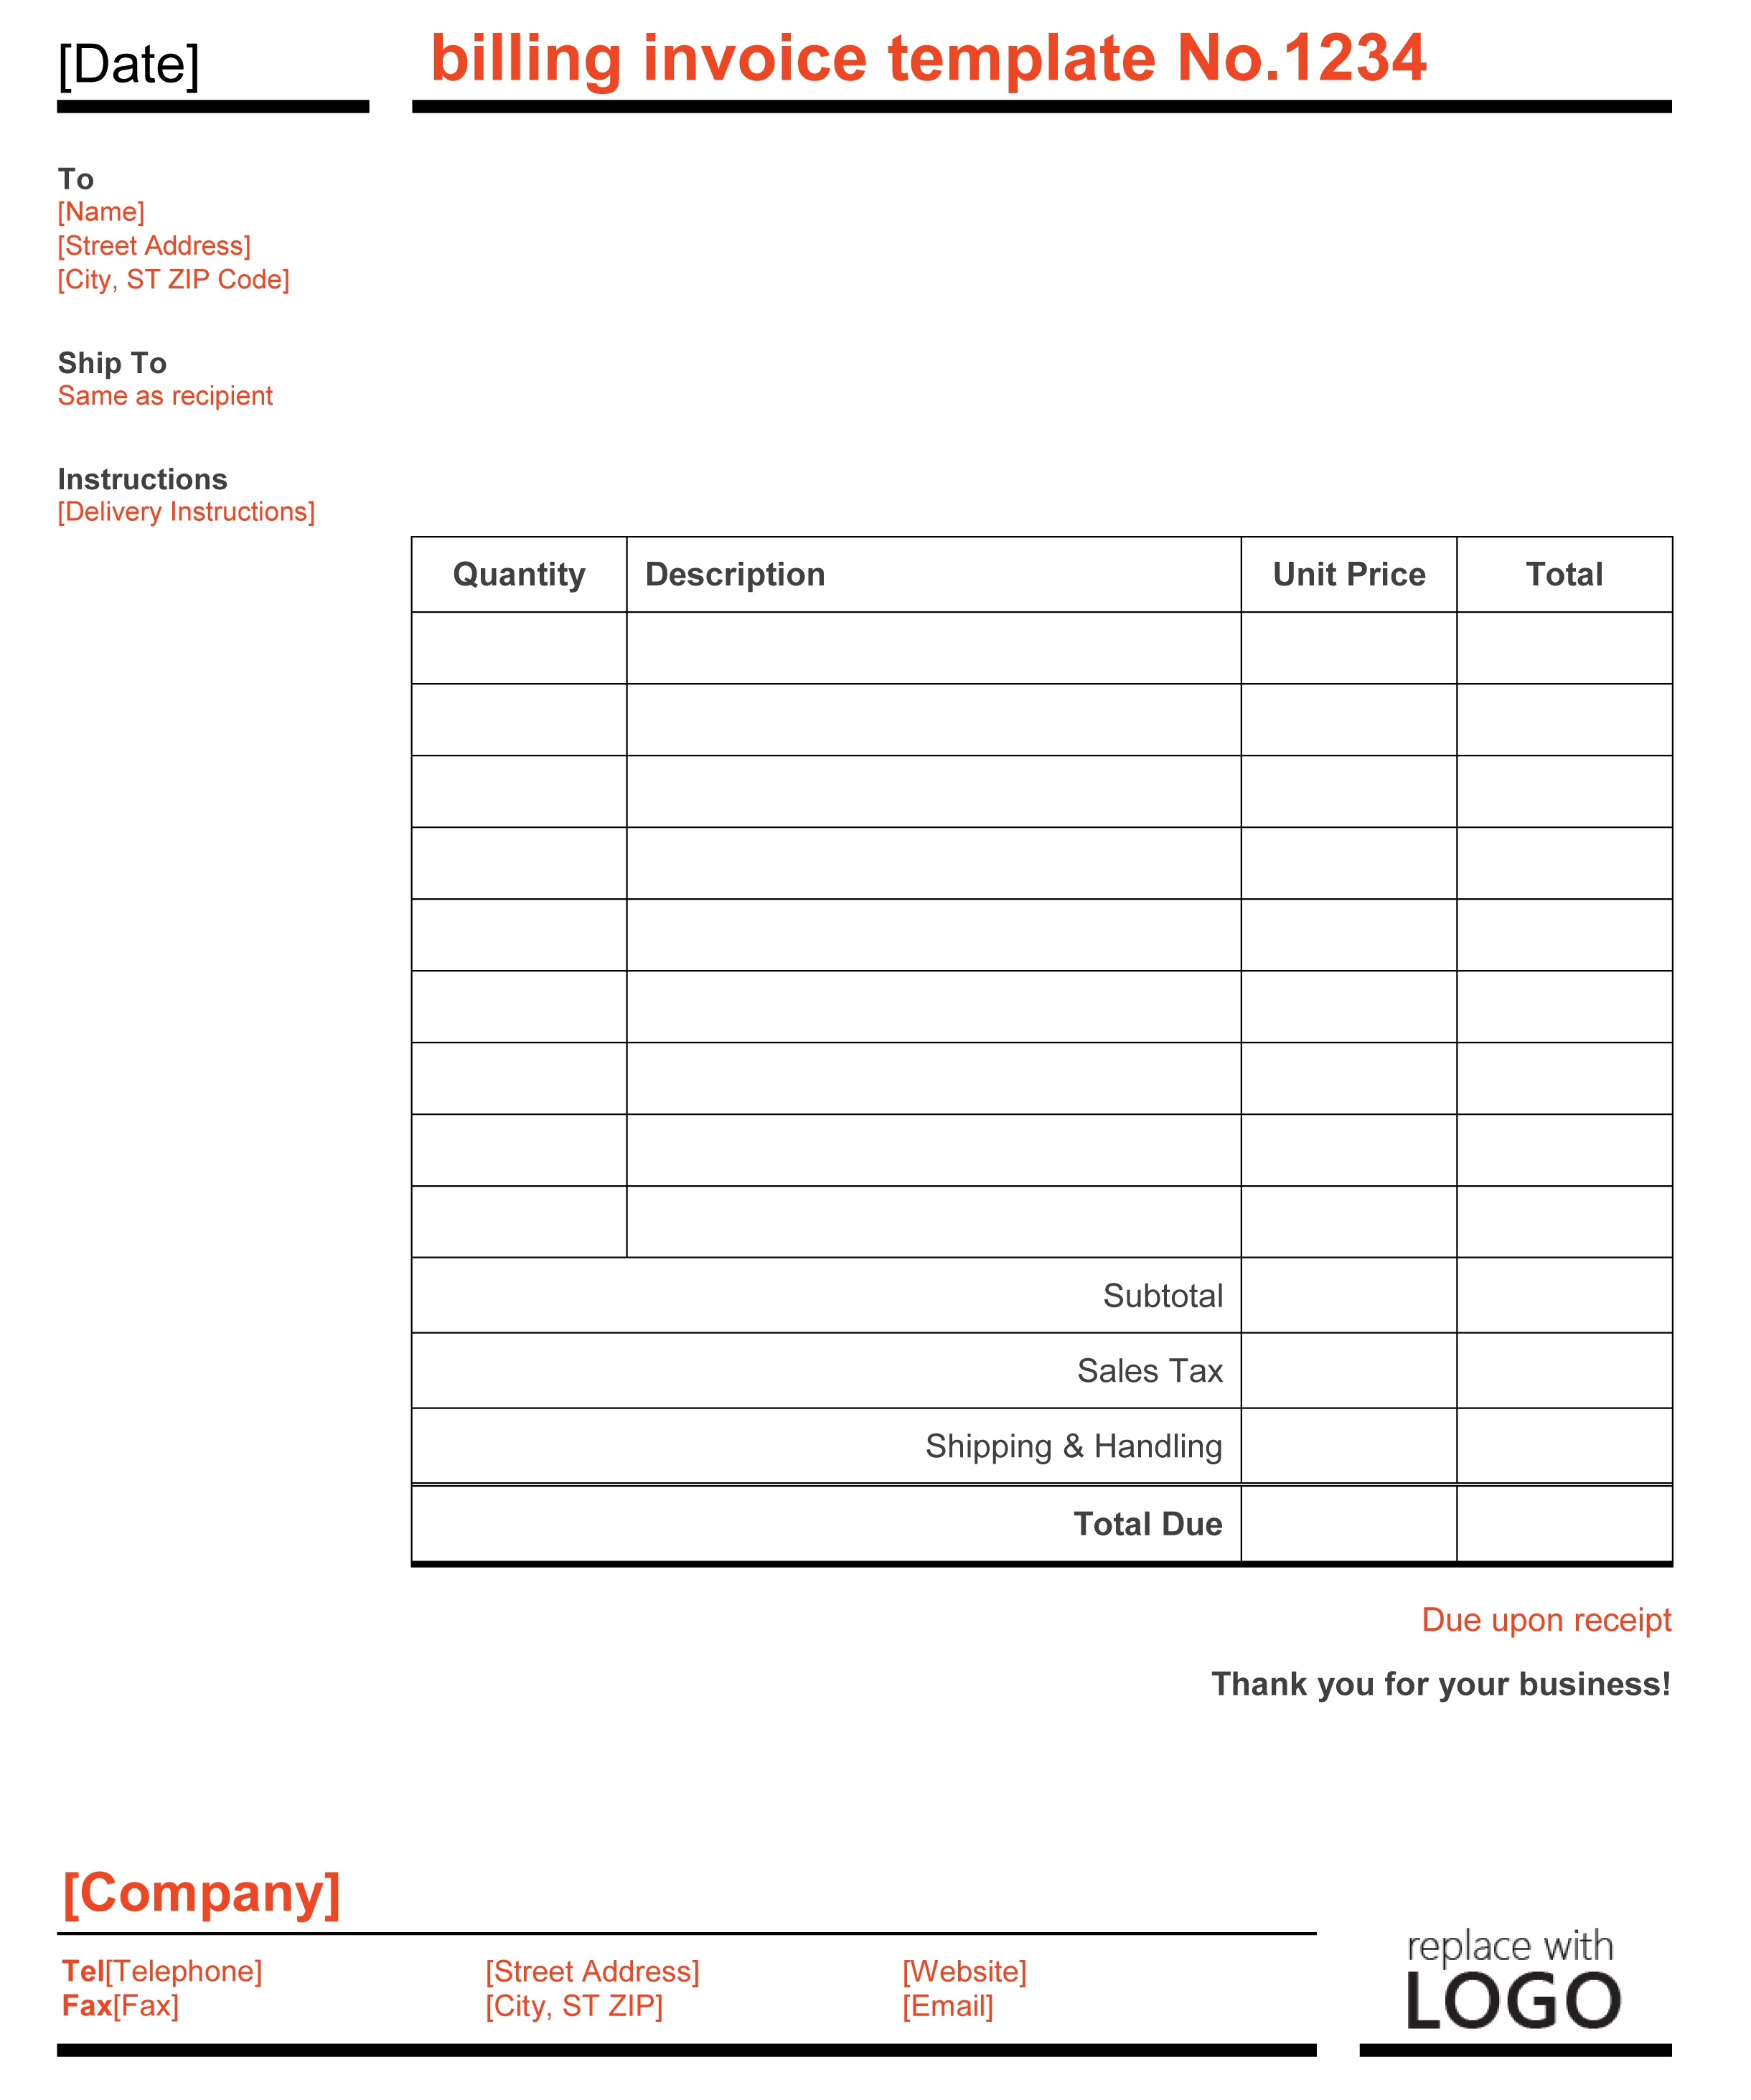 free billing invoice template microsoft word best business template billing invoice template